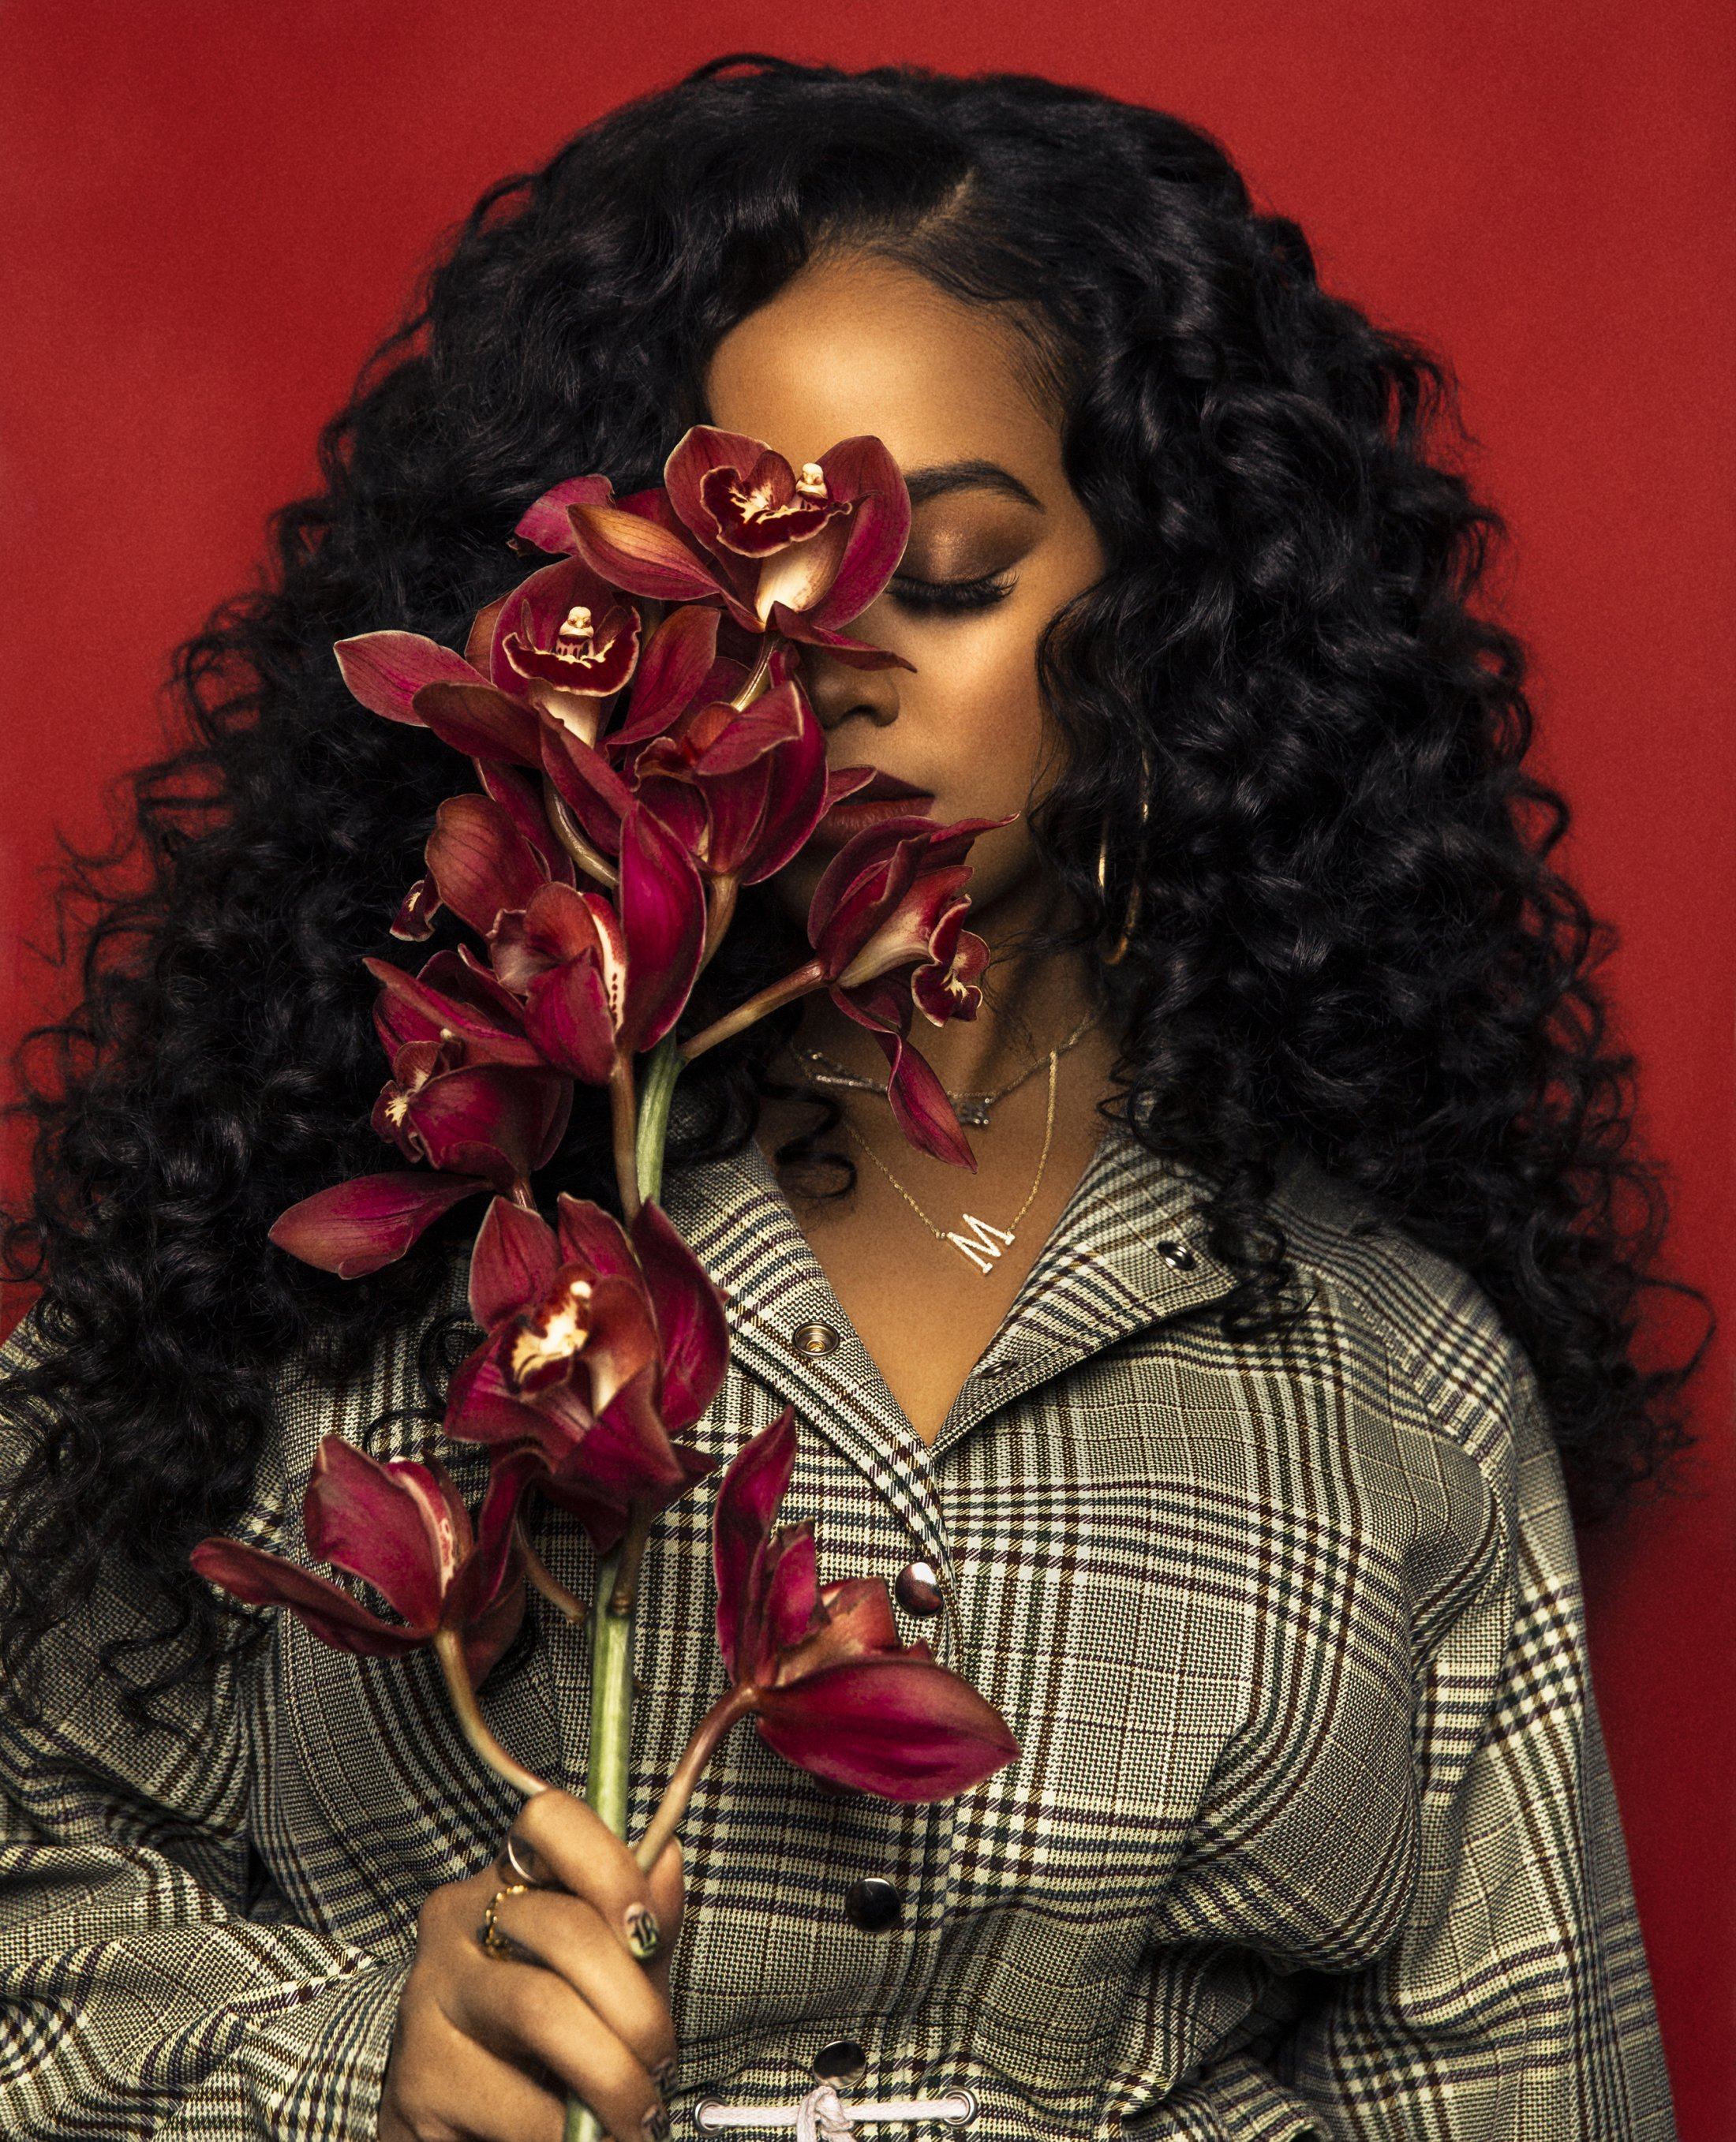 Thumbnail for H.E.R. GRAMMY Visibility for 'HER' EP and 'I Used To Know Her Album Campaign